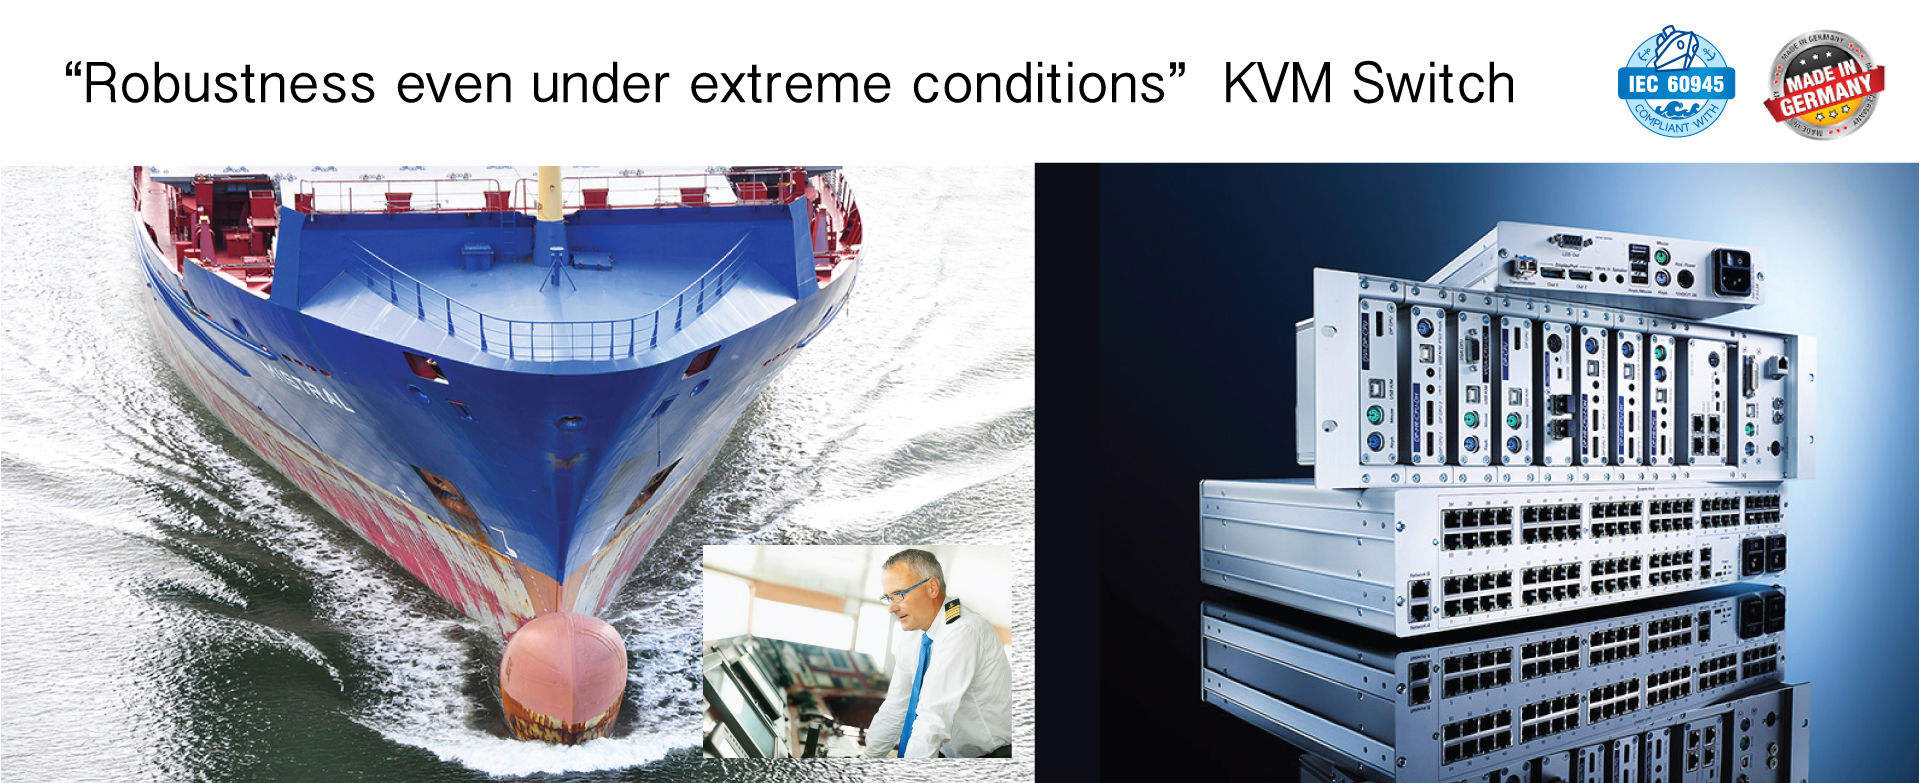 kvm switch for extream condition